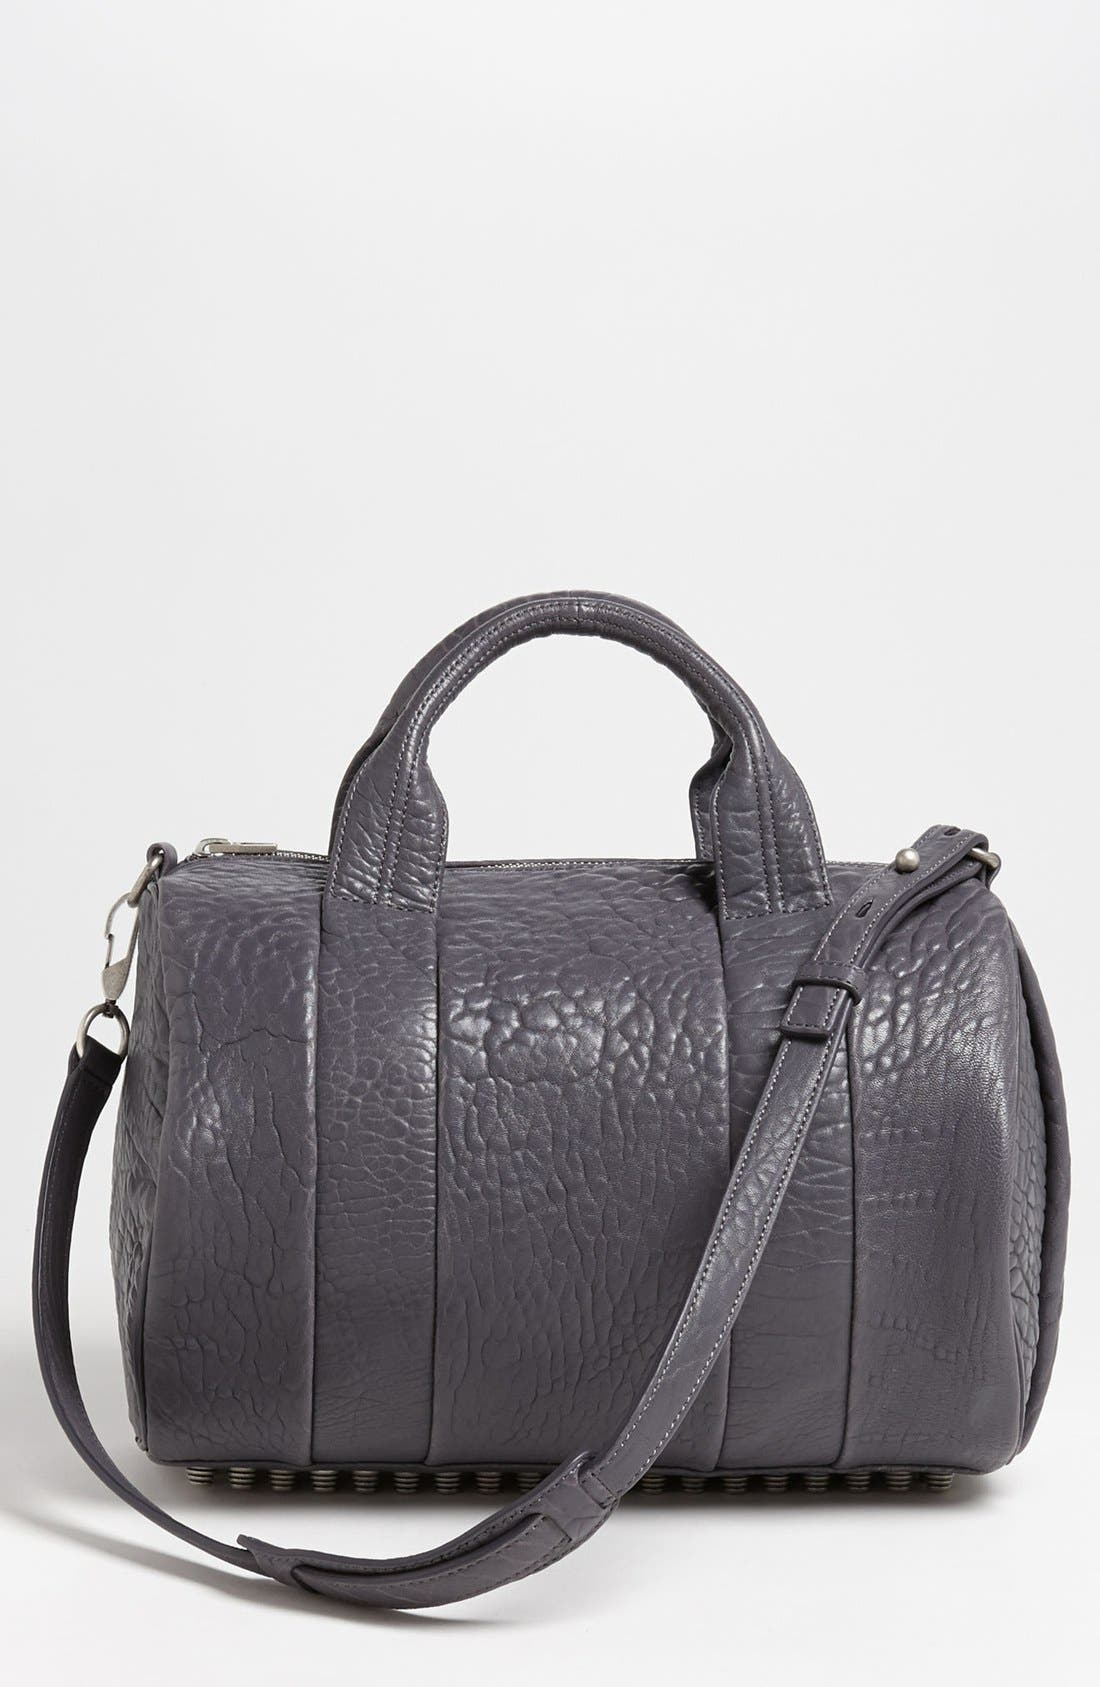 Alternate Image 1 Selected - Alexander Wang 'Rocco - Antique Silver' Leather Satchel